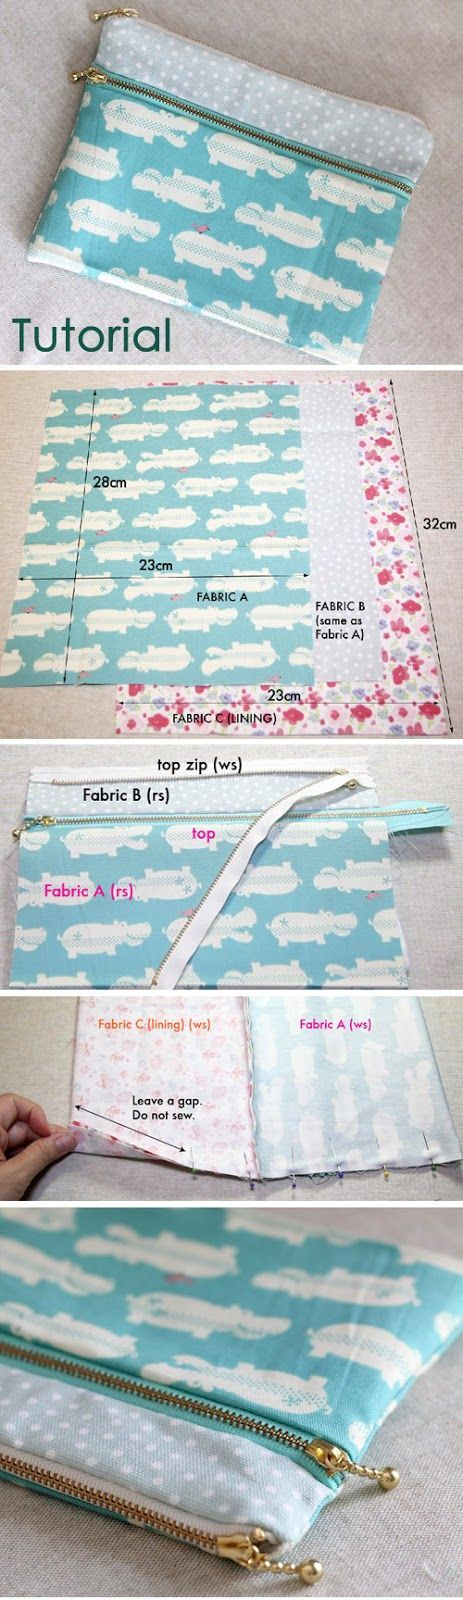 How to make a double zip pouch with two compartments. Sewing Tutorial DIY in Pictures. http://www.handmadiya.com/2015/11/double-zip-pouch-tutorial.html: